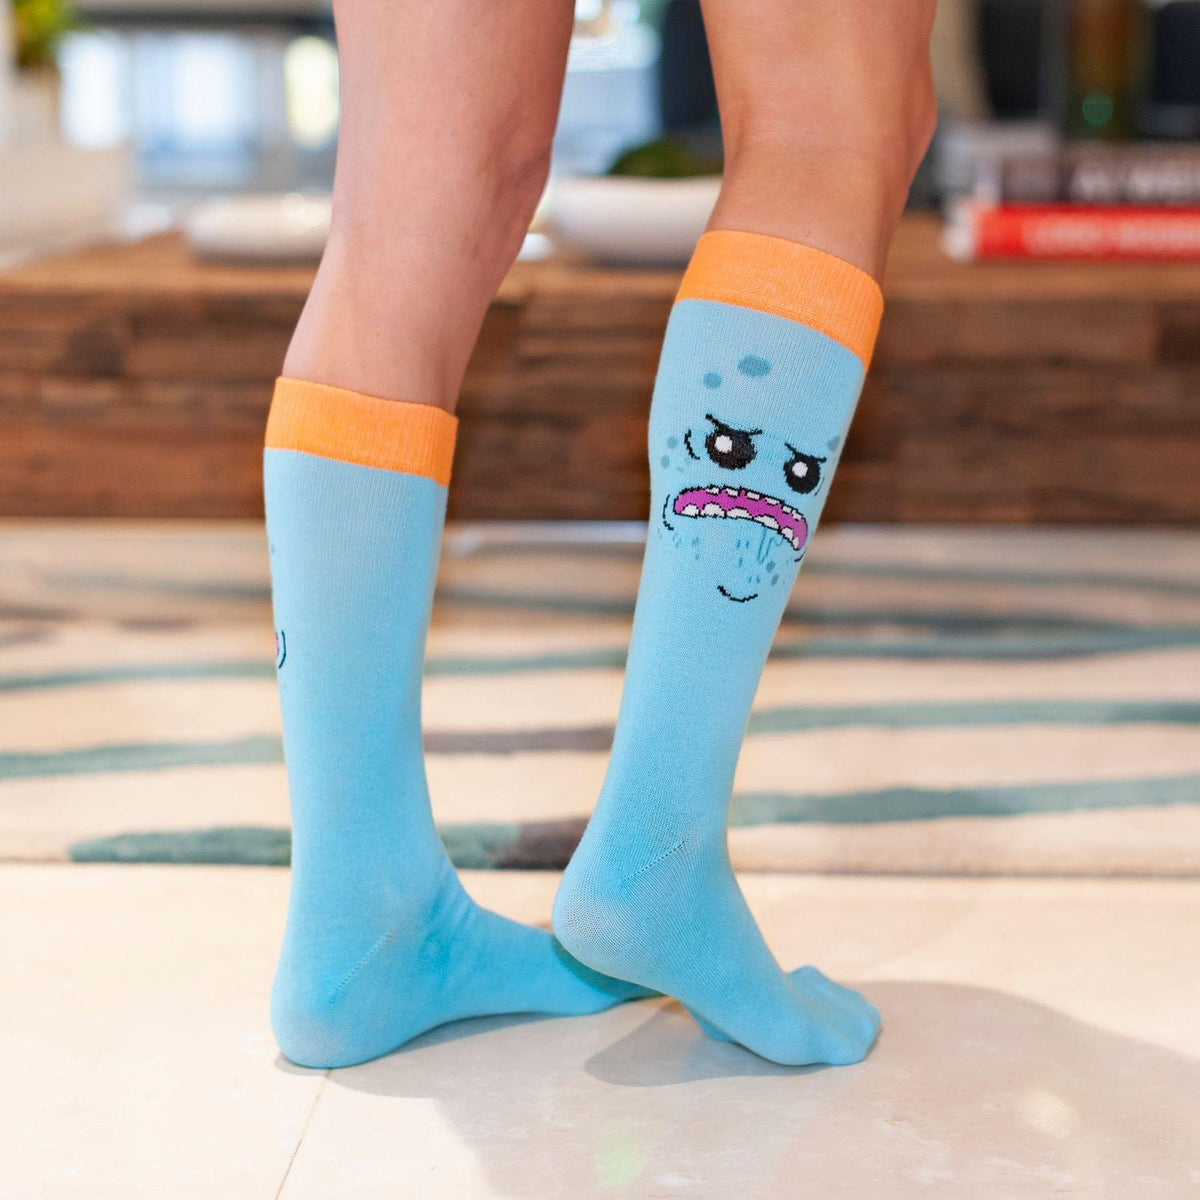 Rick and Morty collectibles | Toynk Toys Rick & Morty Mr. Meeseeks Crew Socks